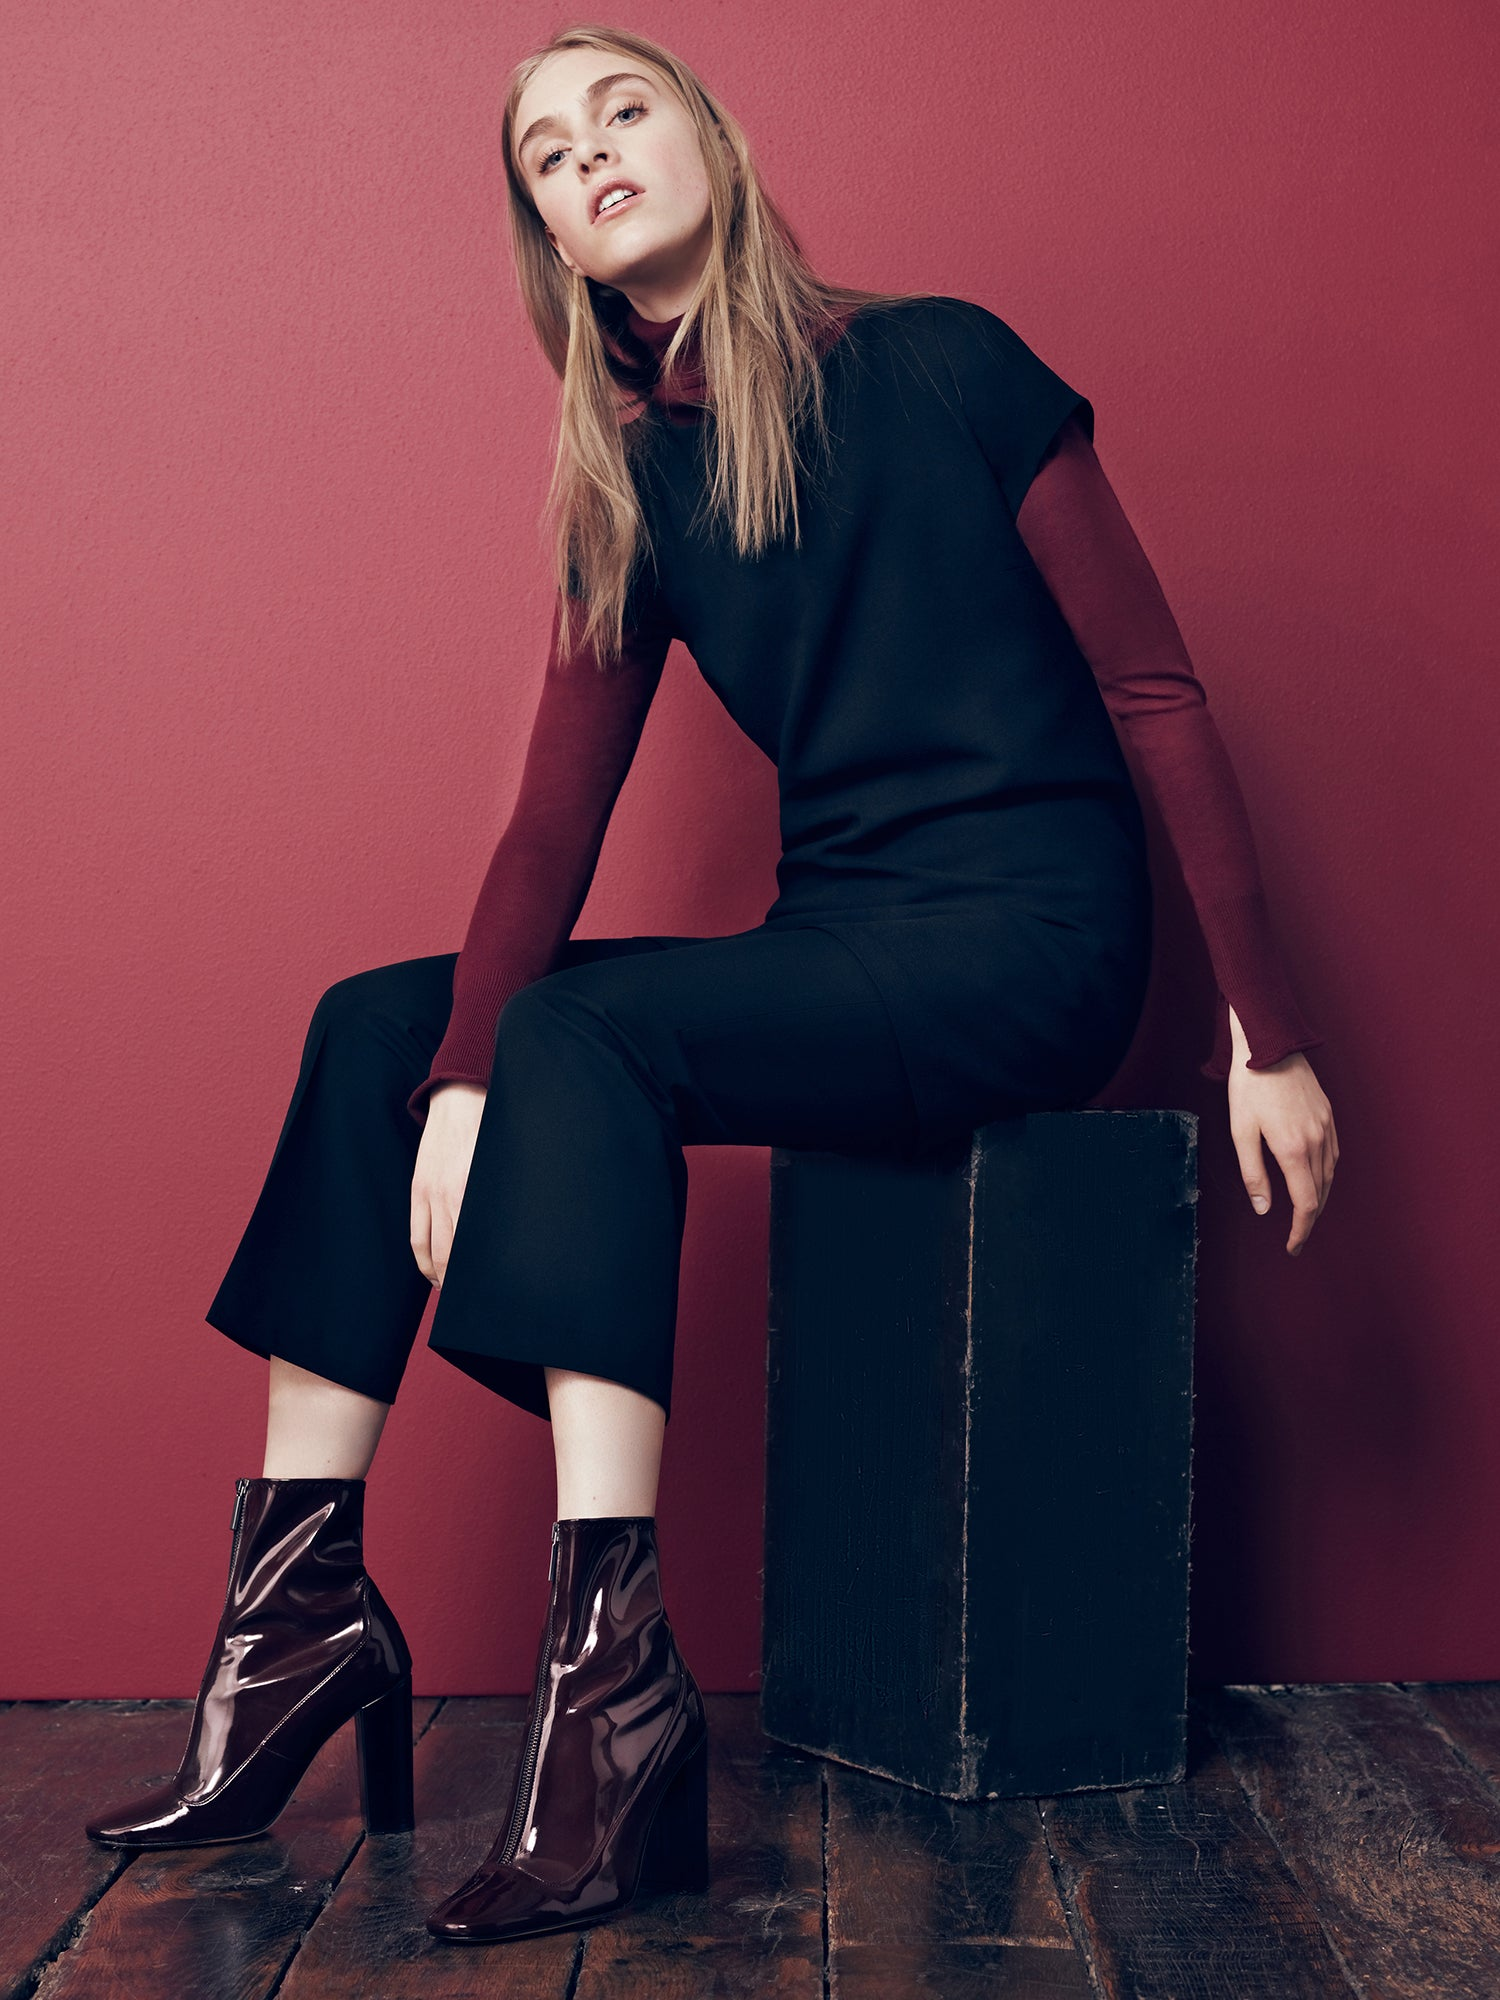 Stuck in the midi: Midi boot trend | The Independentindependent_brand_ident_LOGOUntitled